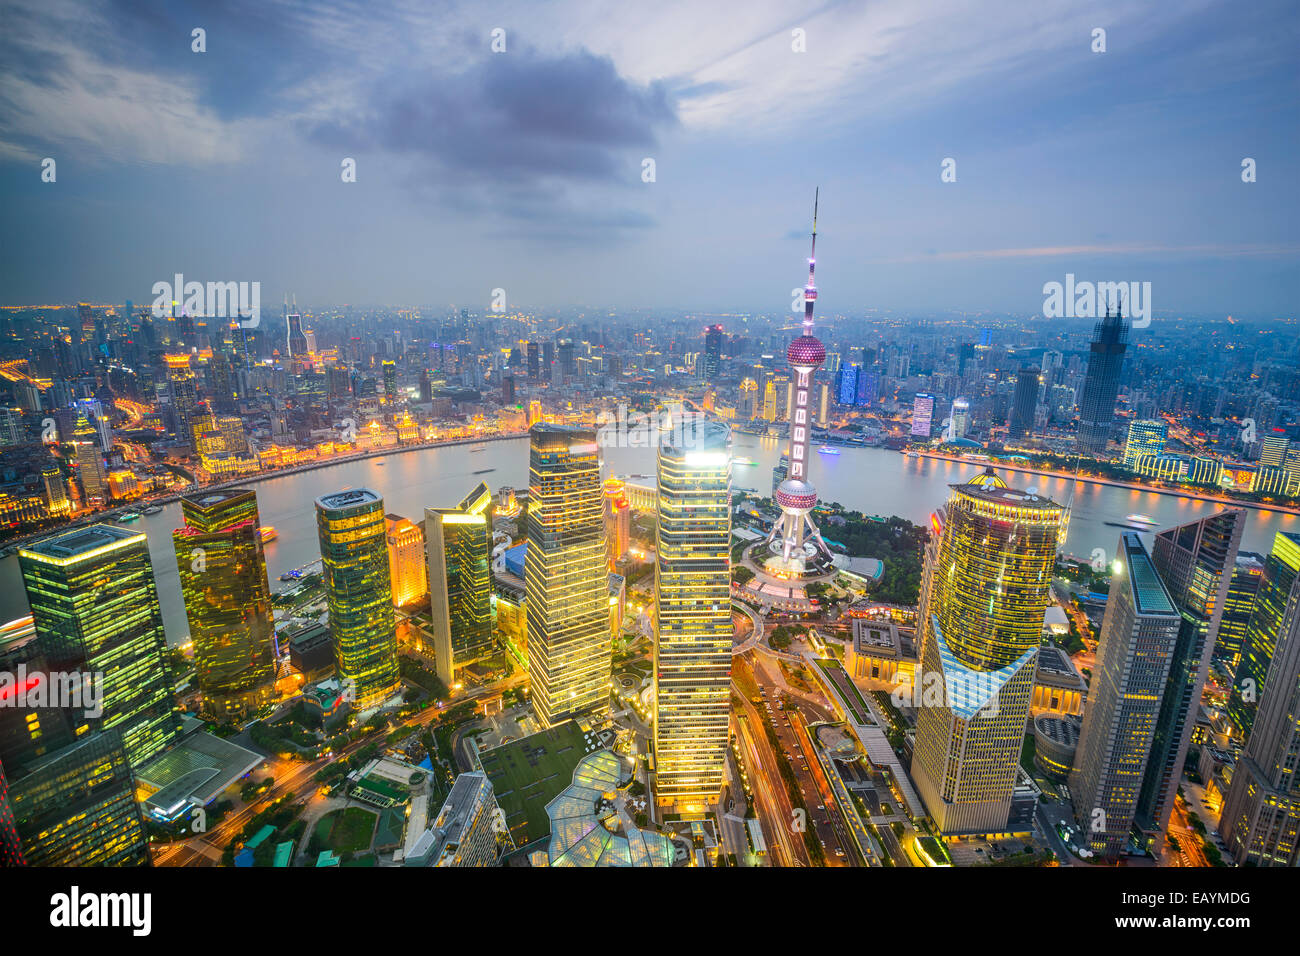 Shanghai, China city skyline viewed from above the Pudong Financial District. - Stock Image